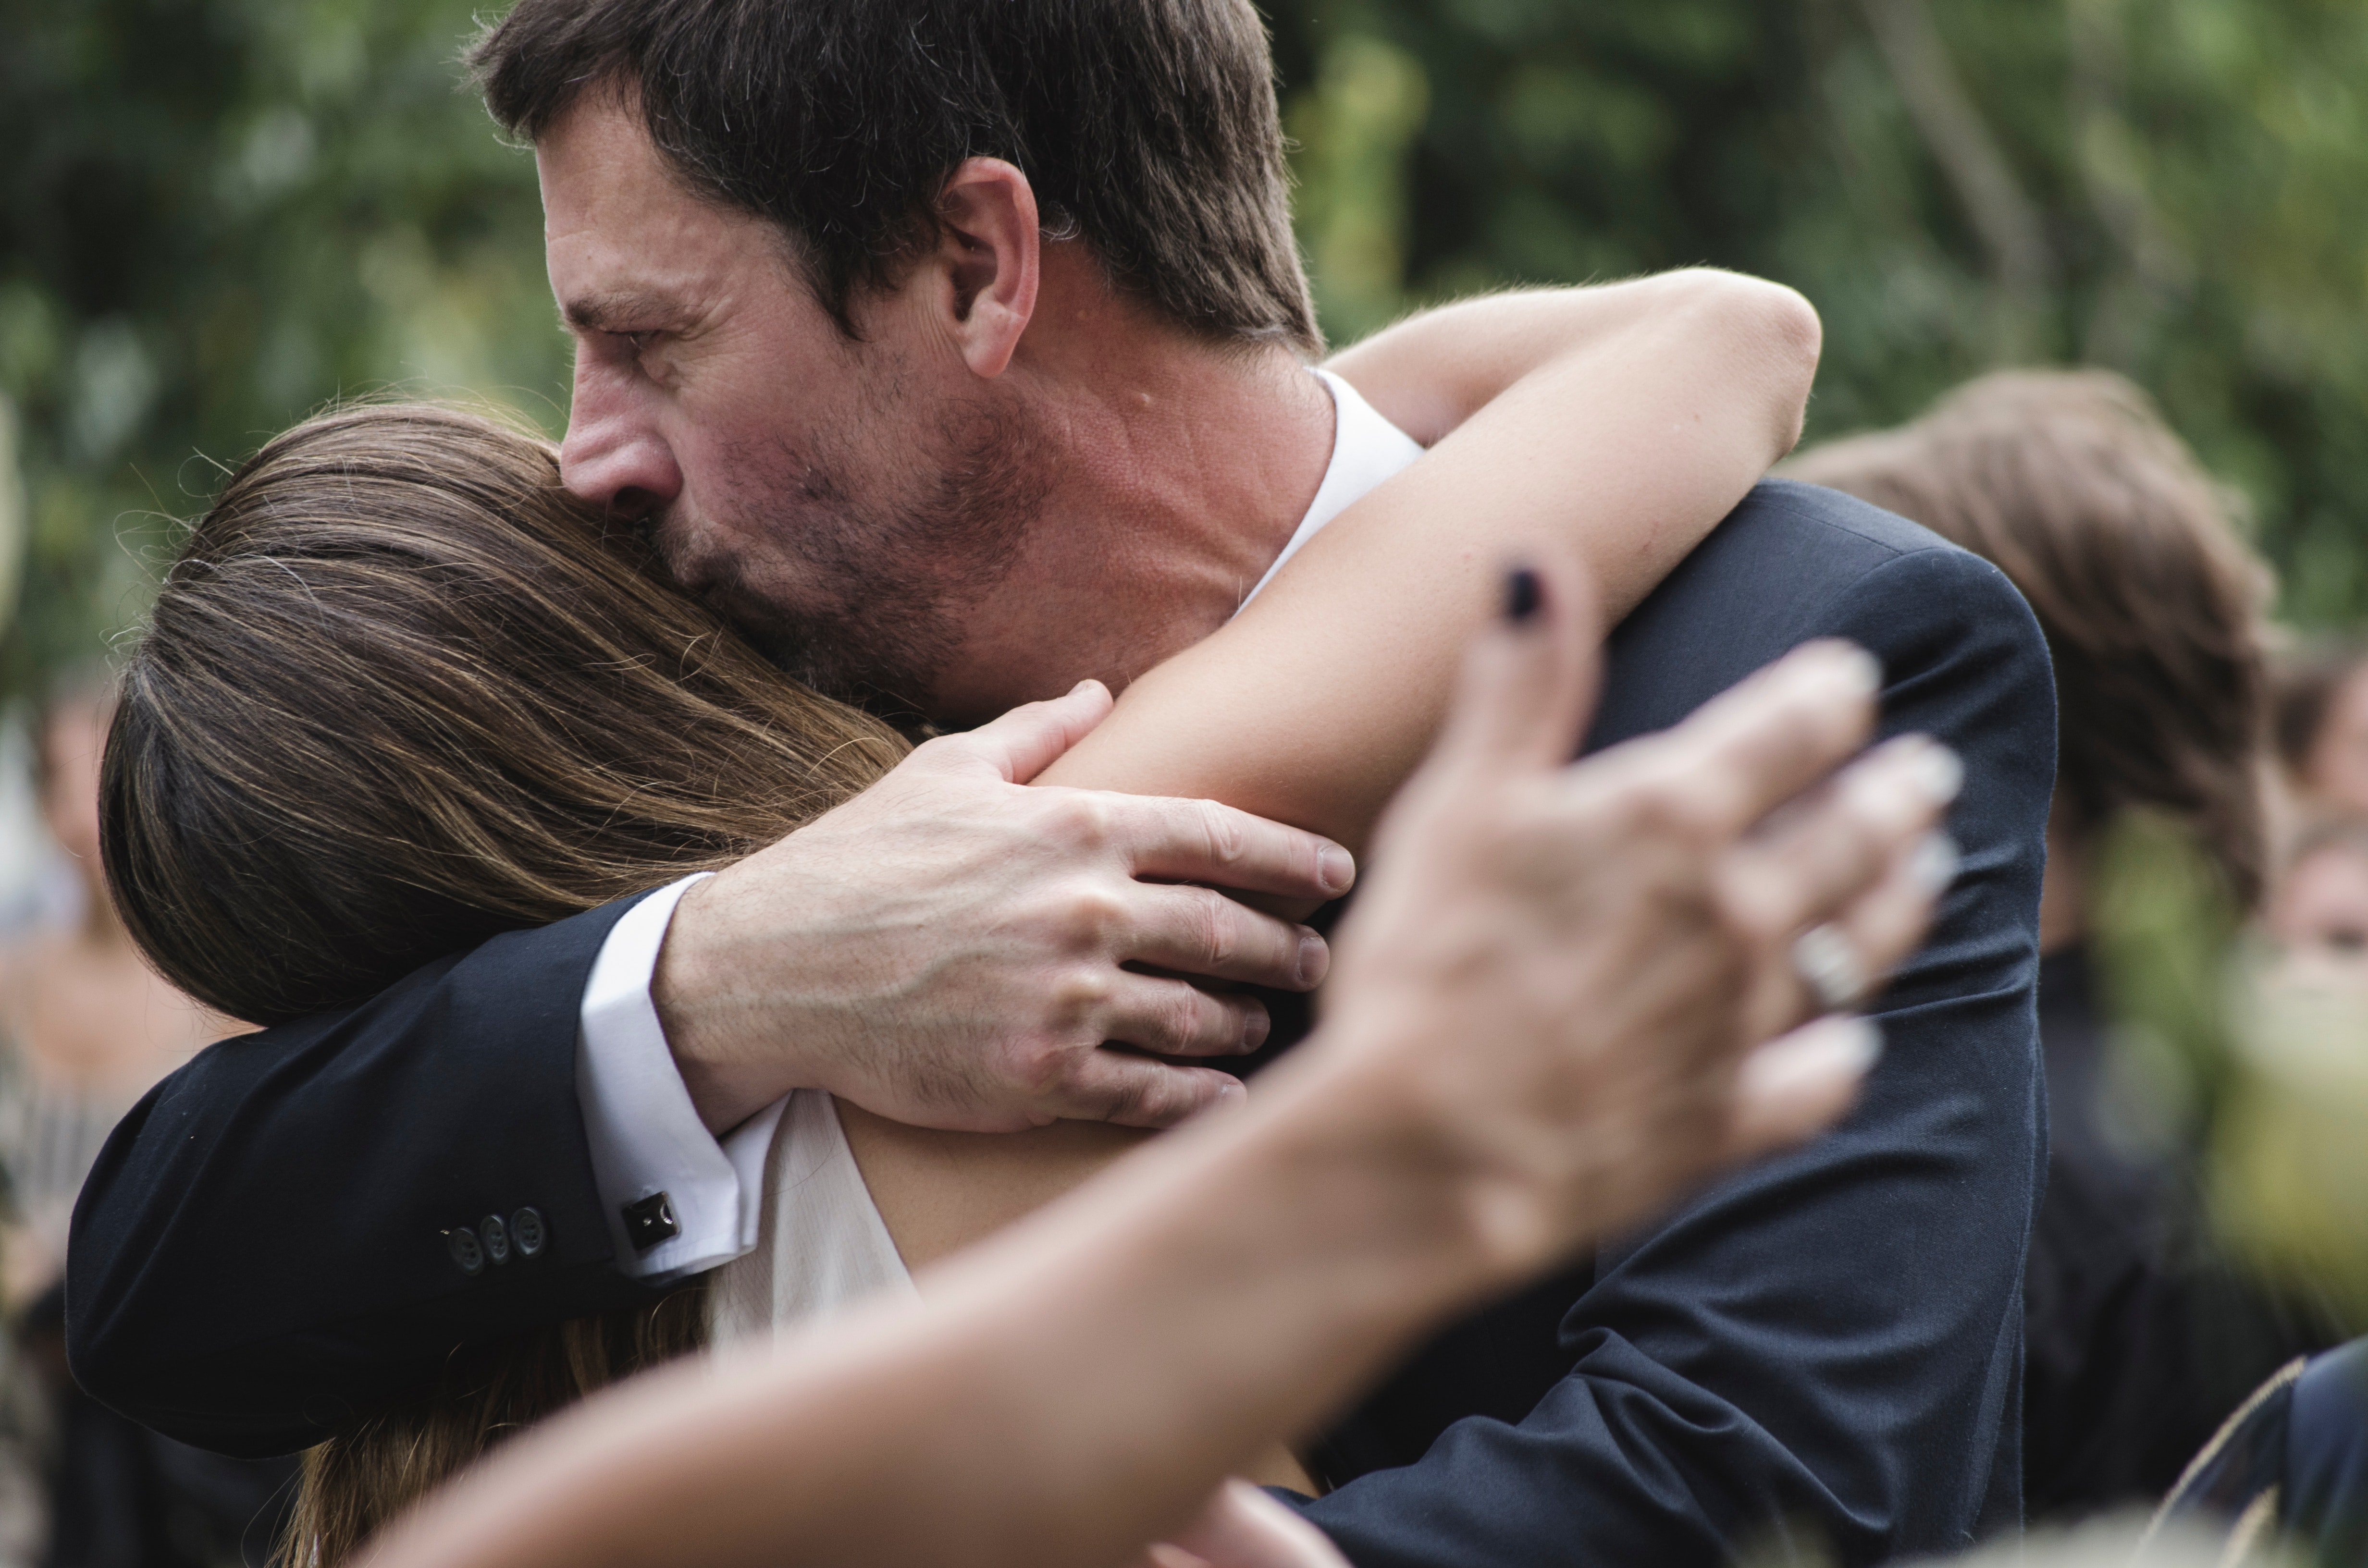 Man and Woman Hugging While Man Kissing Woman's Head, Affection, Happy, Together, People, HQ Photo